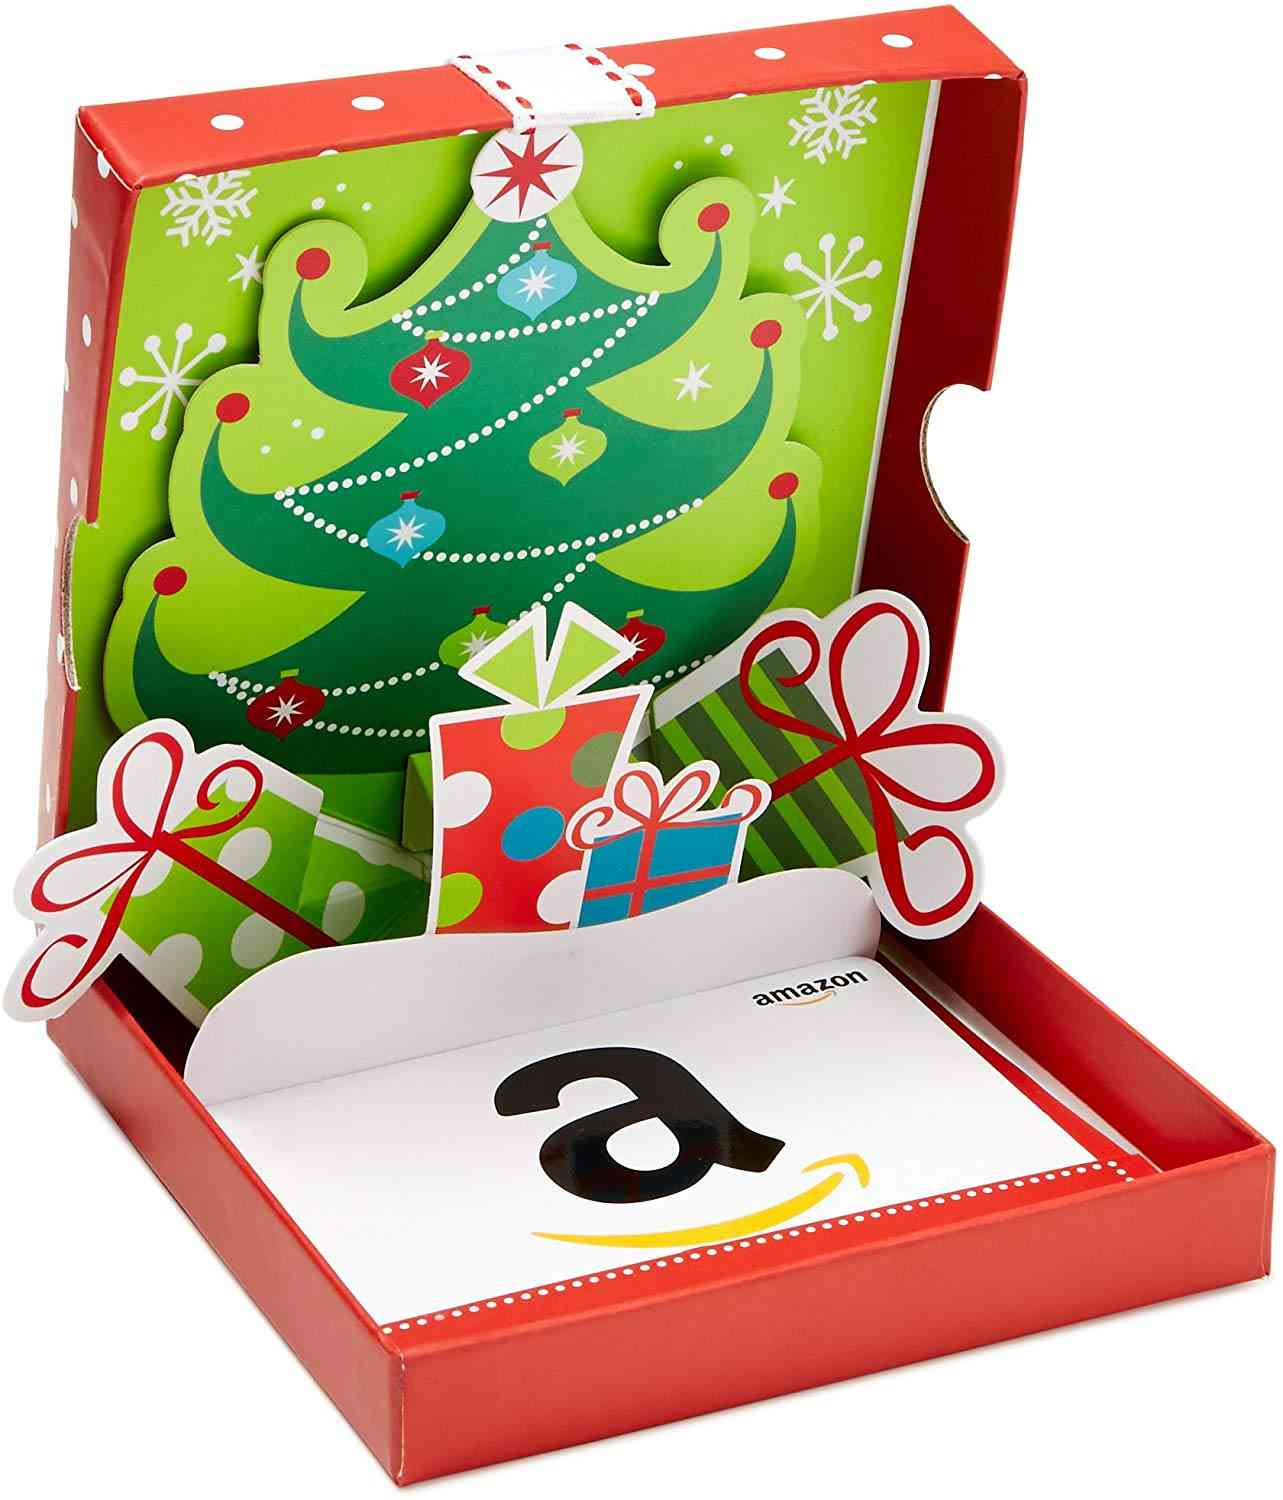 Best Christmas Gifts For Men [2019] - Amazon gift card pop-up box